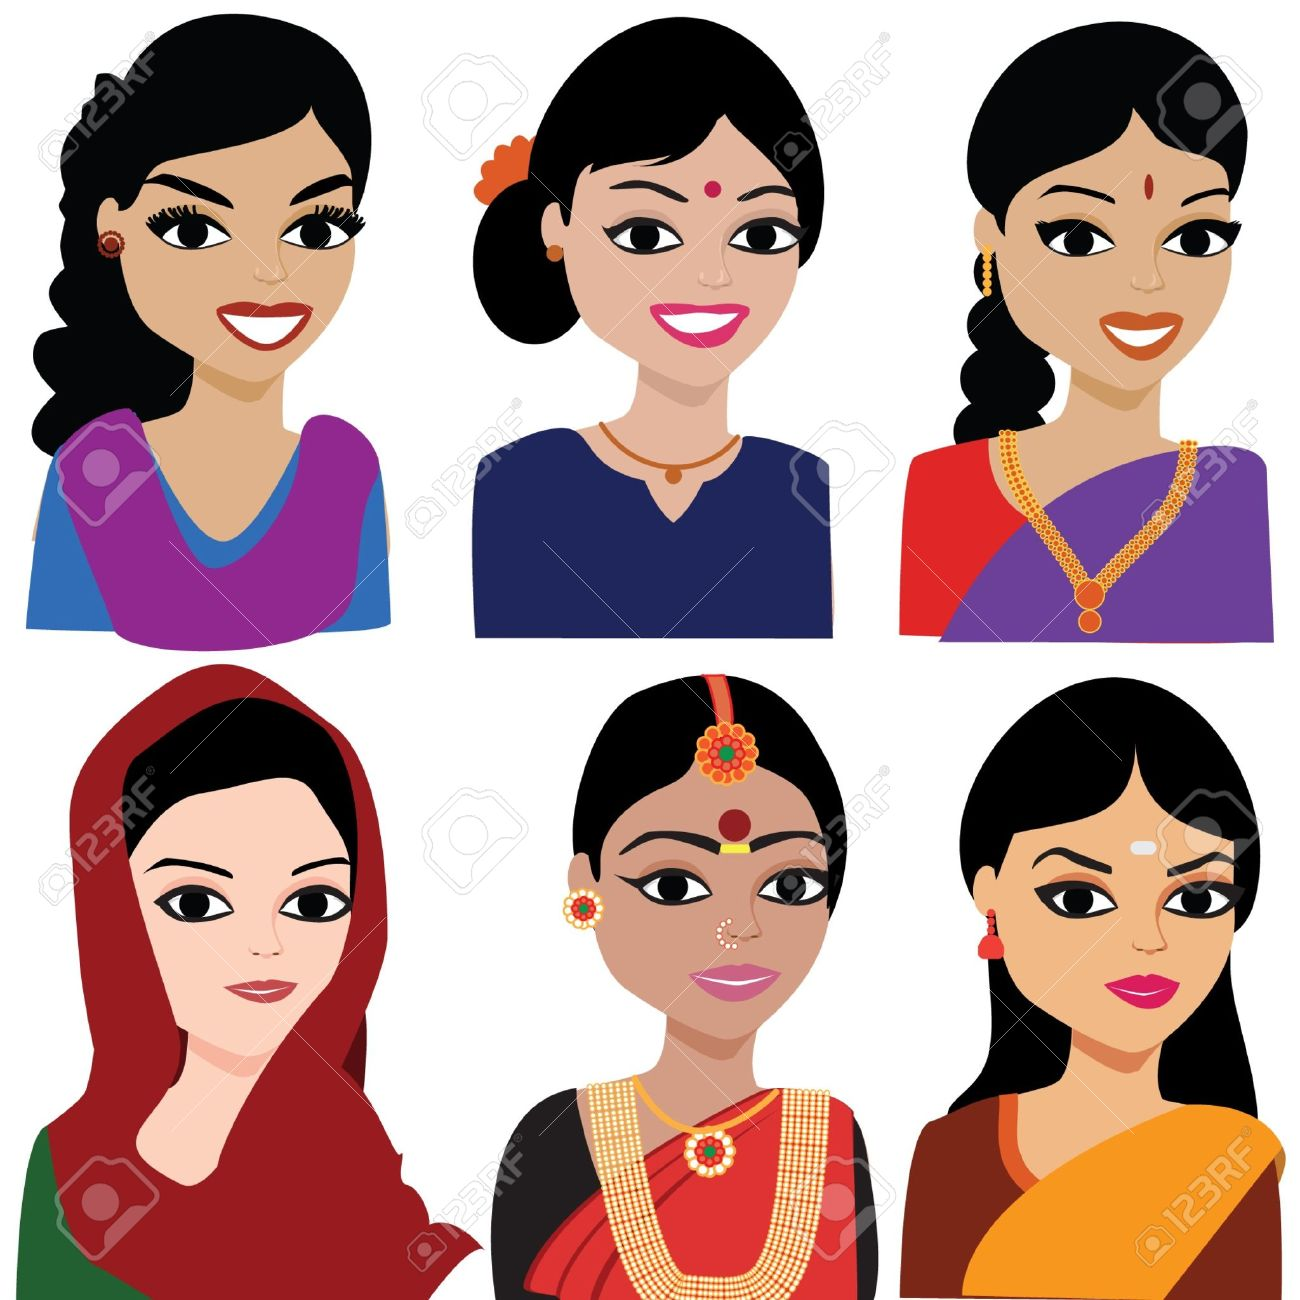 Woman from india clipart.